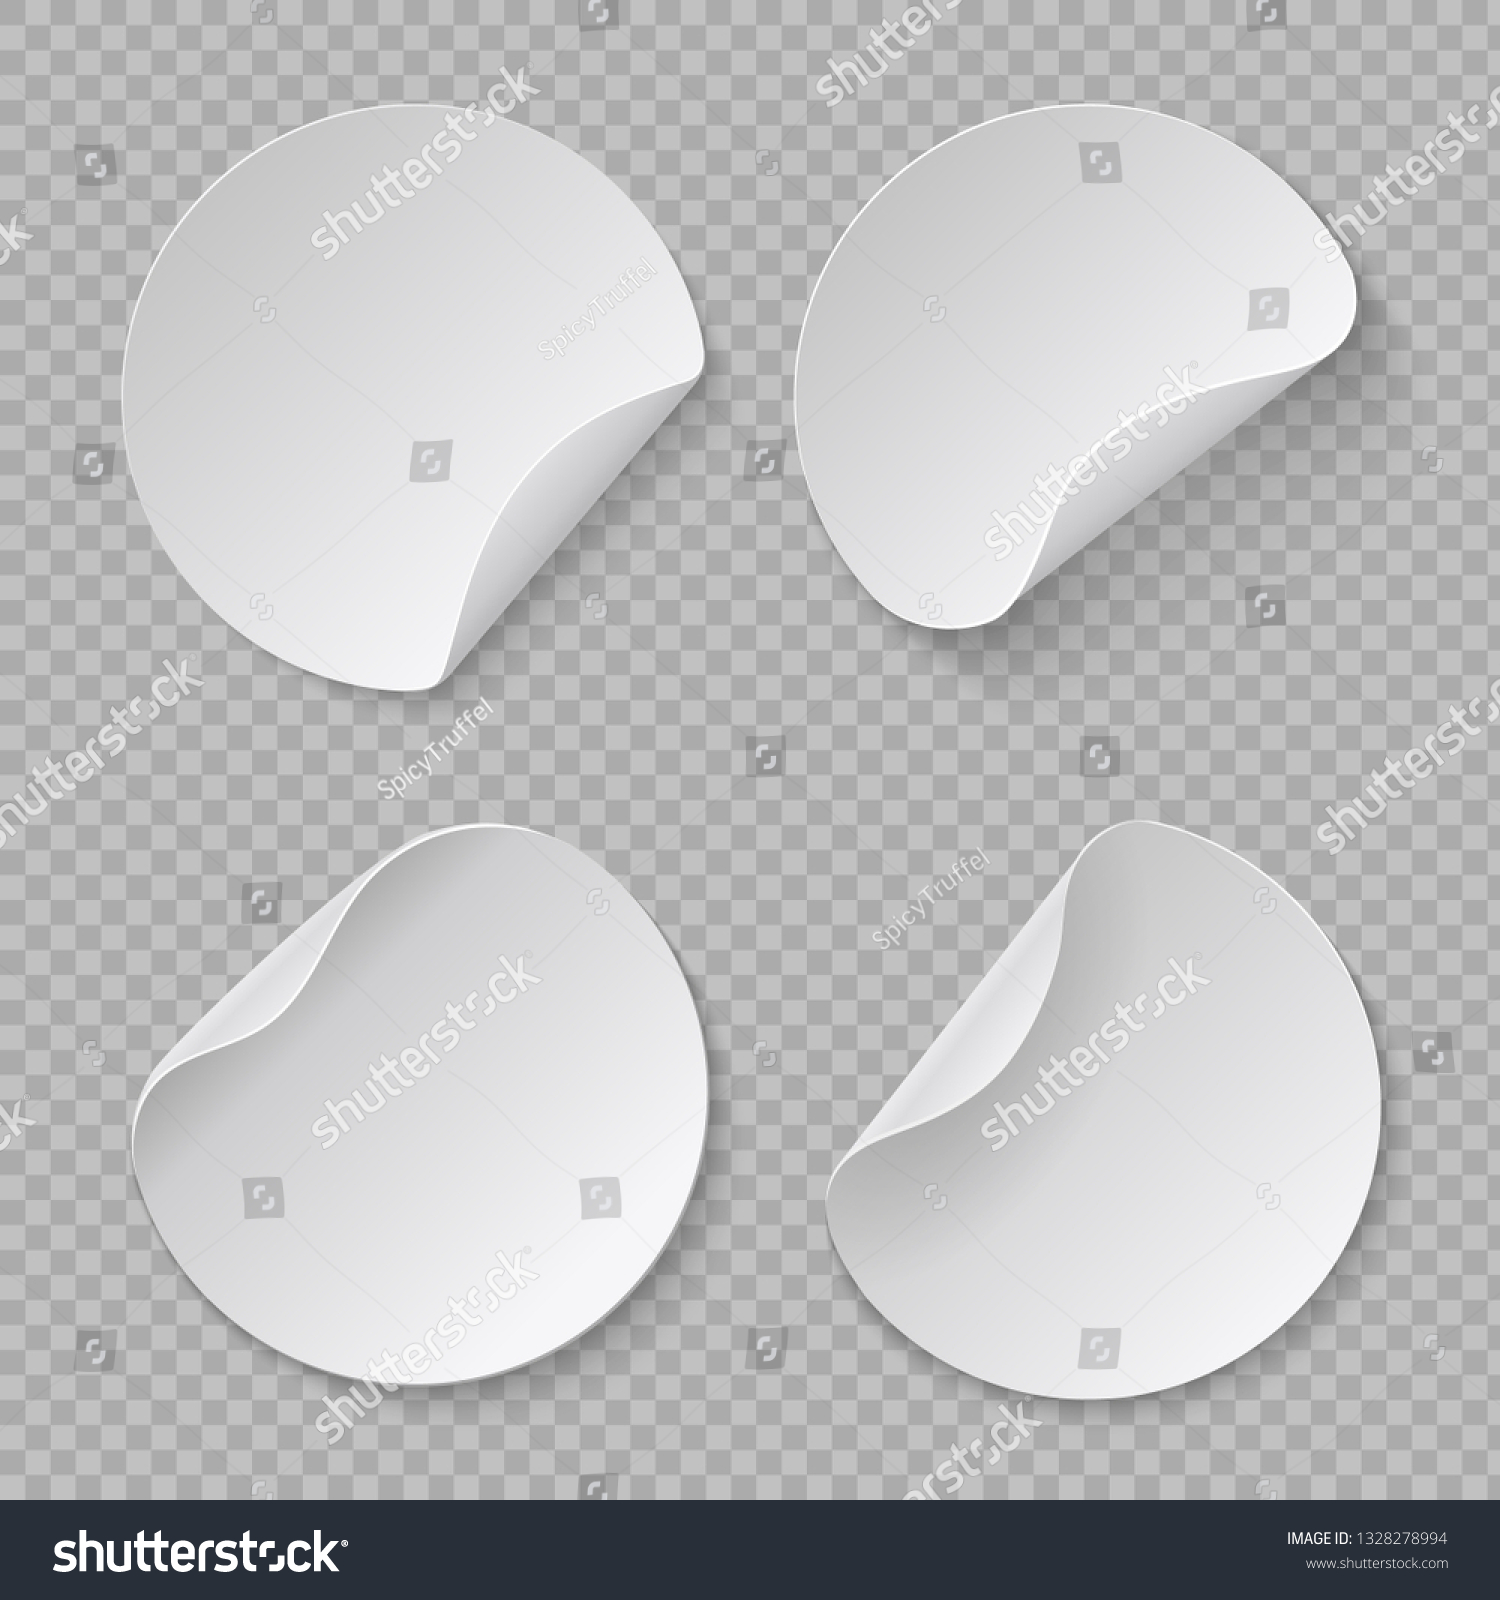 Input Device and Computer Part icons collection.   Computer icon, Icon,  Science icons